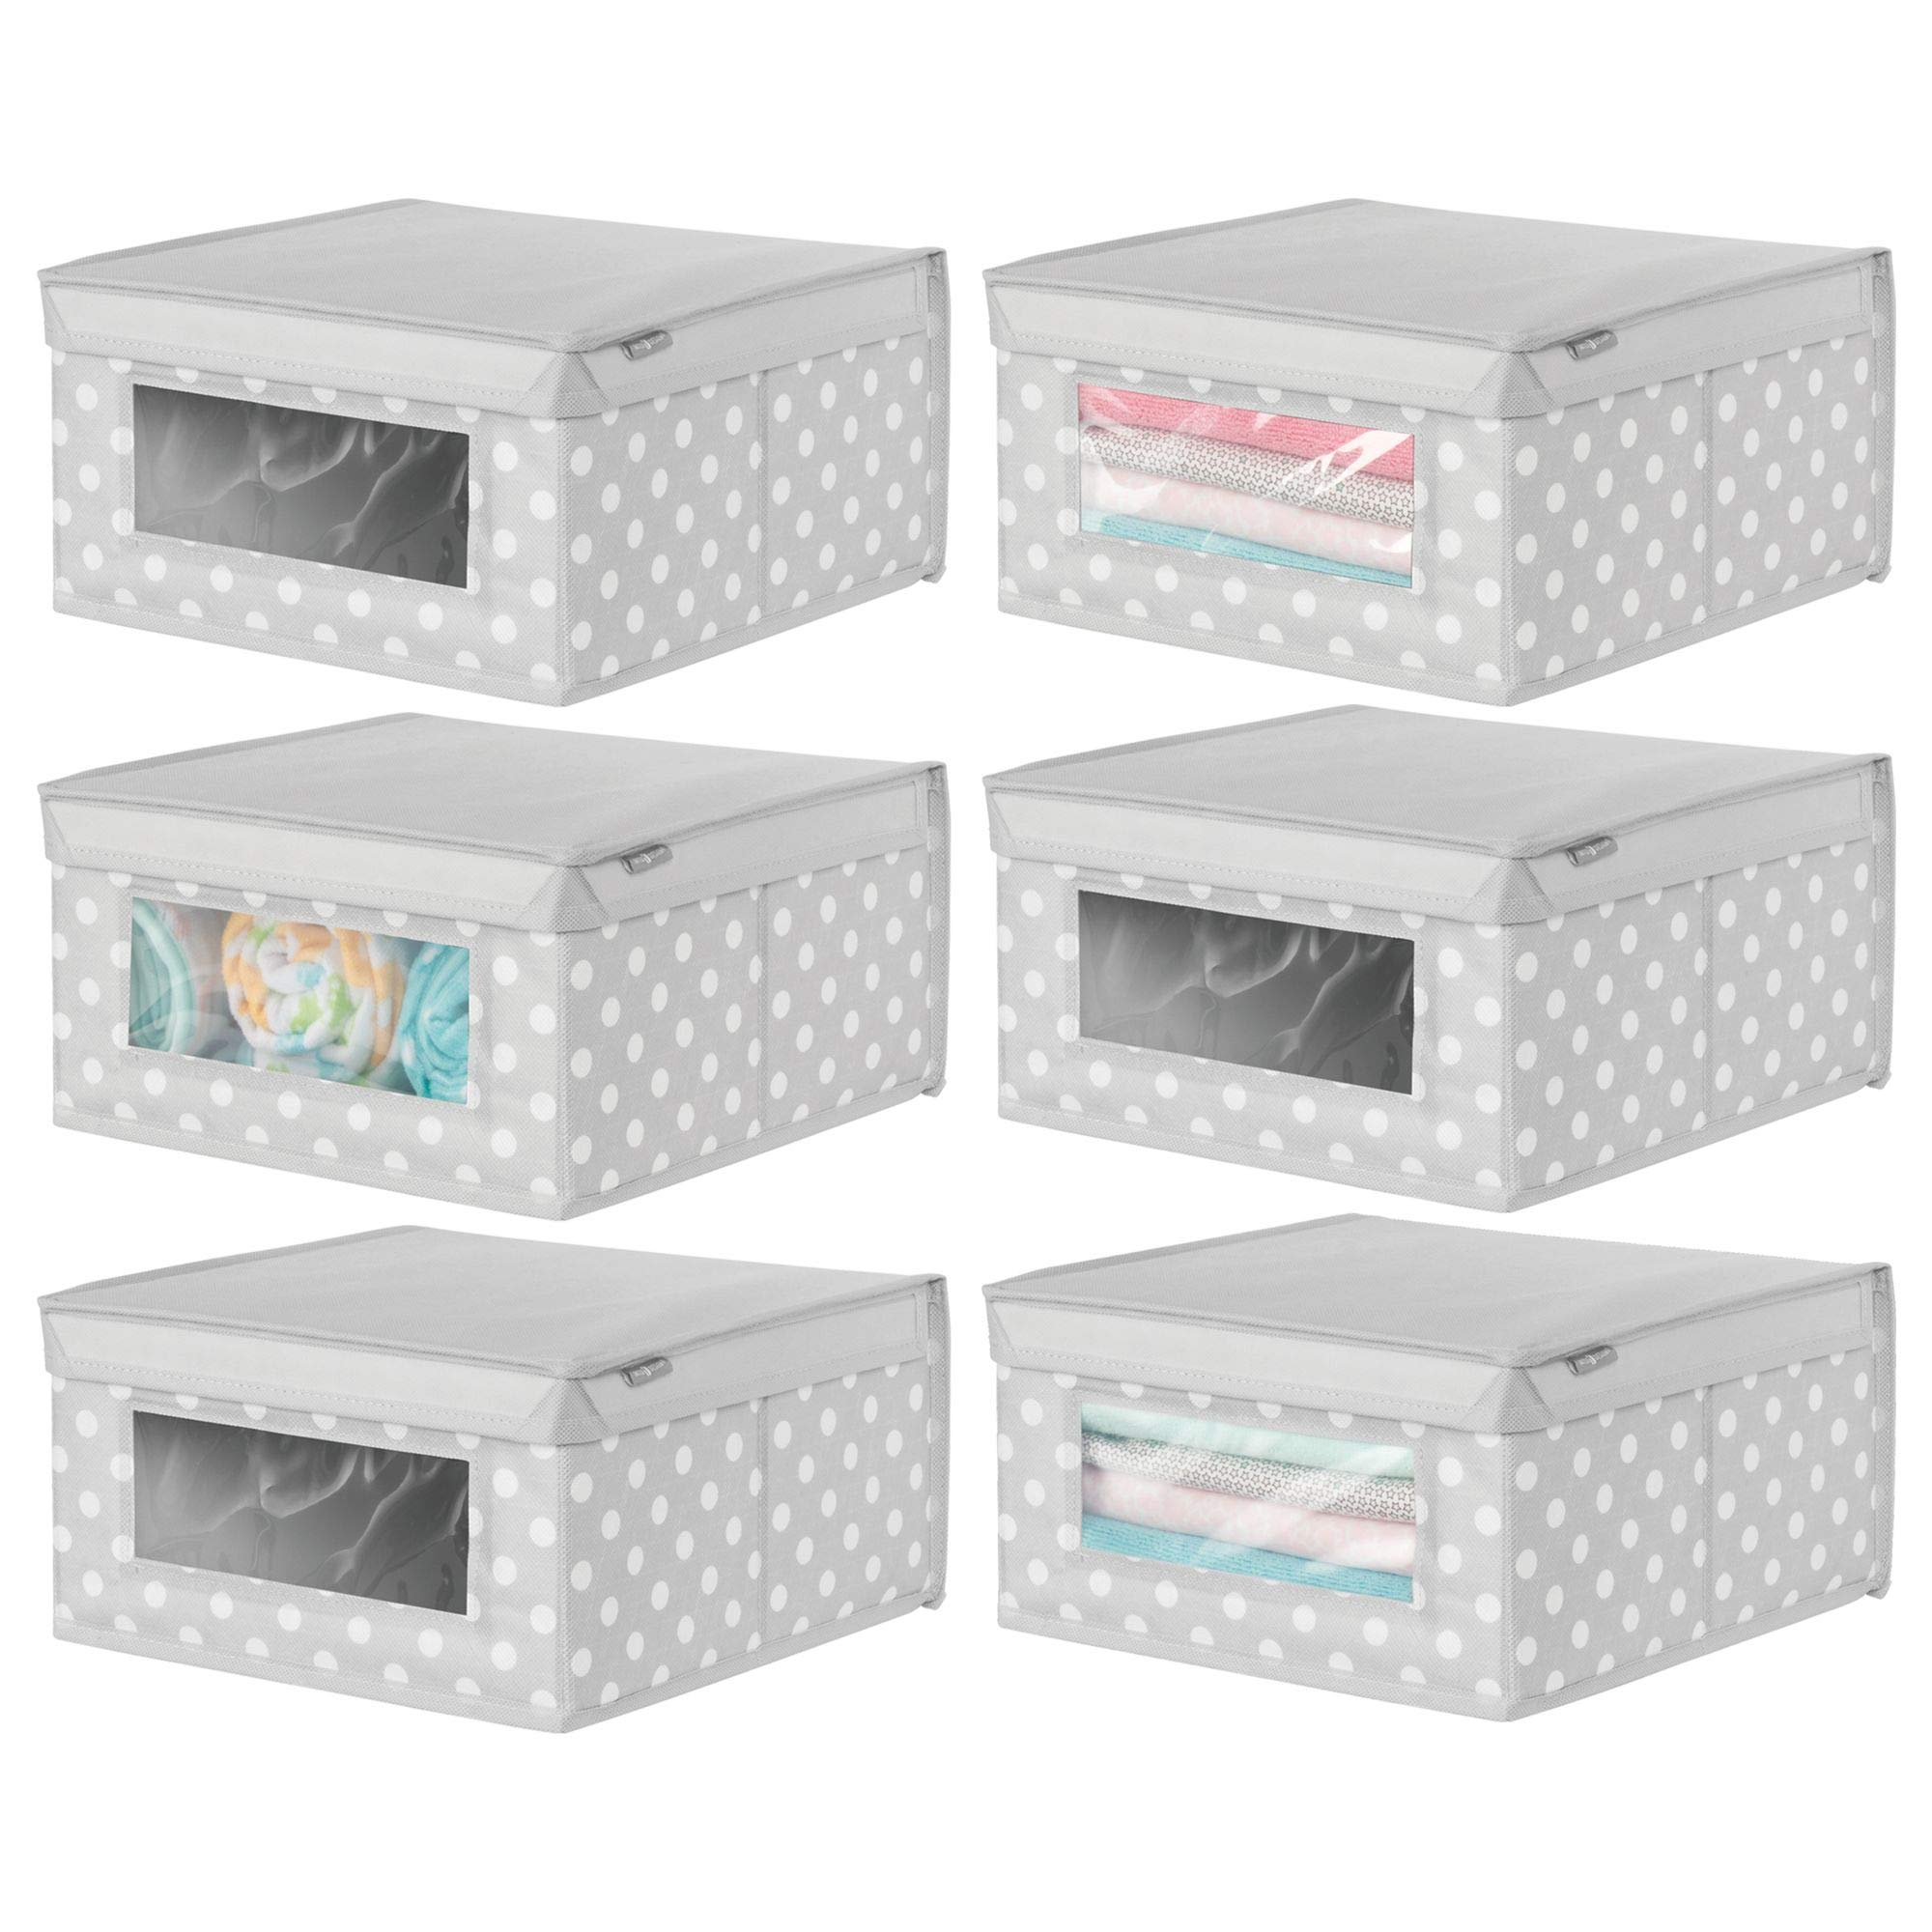 mDesign Soft Stackable Fabric Closet Storage Organizer Holder Box - for Child/Toddler Kids Room, Nursery Clothes Organization - Polka Dot - Medium, 6 Pack, Light Gray with White Dots